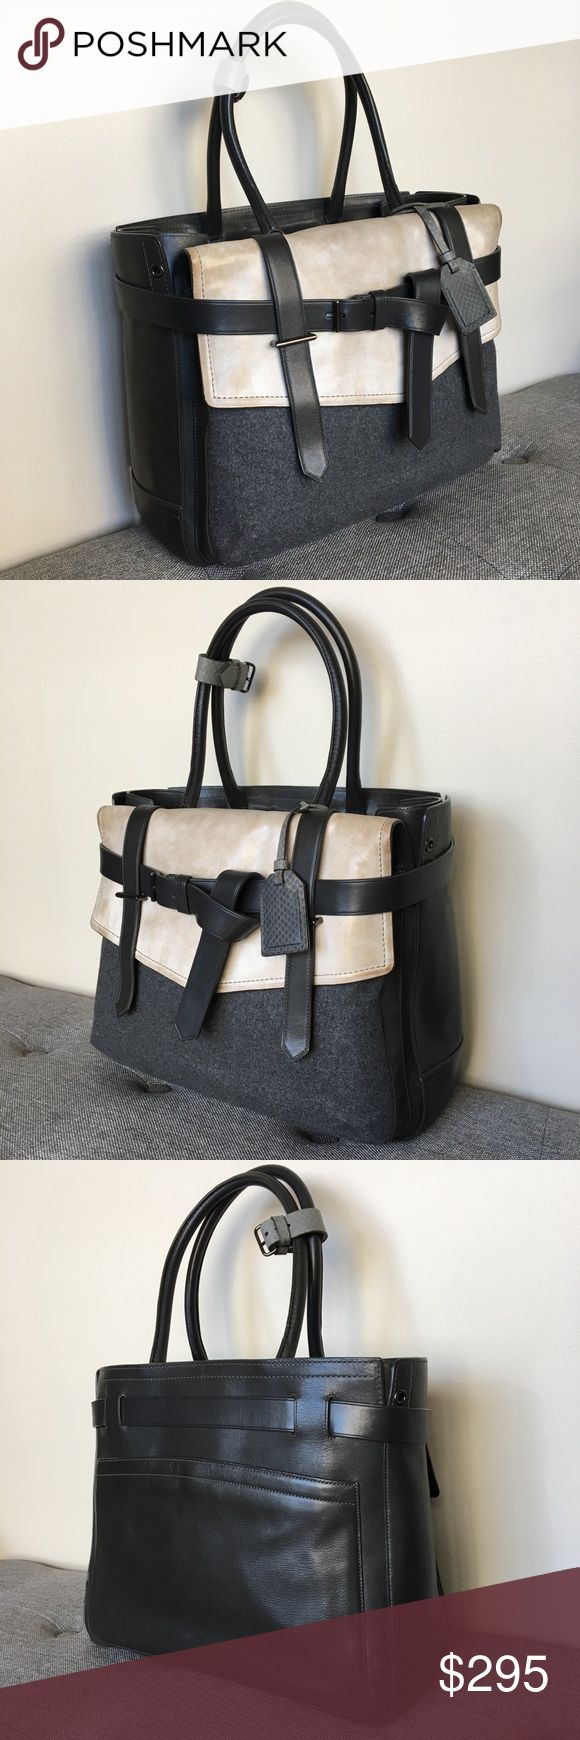 """Reed Krakoff Wool Black Leather Boxer Tote Handbag Original genuine leather Reed Krakoff """"Boxer"""" Handbag. Black smooth leather throughout, light gray leather front flap (color variation characteristic of the dye method) on a charcoal felted wool front pocket. The flap is lined in black leather. Gray snakeskin embossed strap belt and luggage tag accents. Lined in charcoal gray cloth. Measures 14"""" wide x 11"""" high x 5"""" deep, with a 8"""" dual strap drop. Overall excellent condition, with light…"""